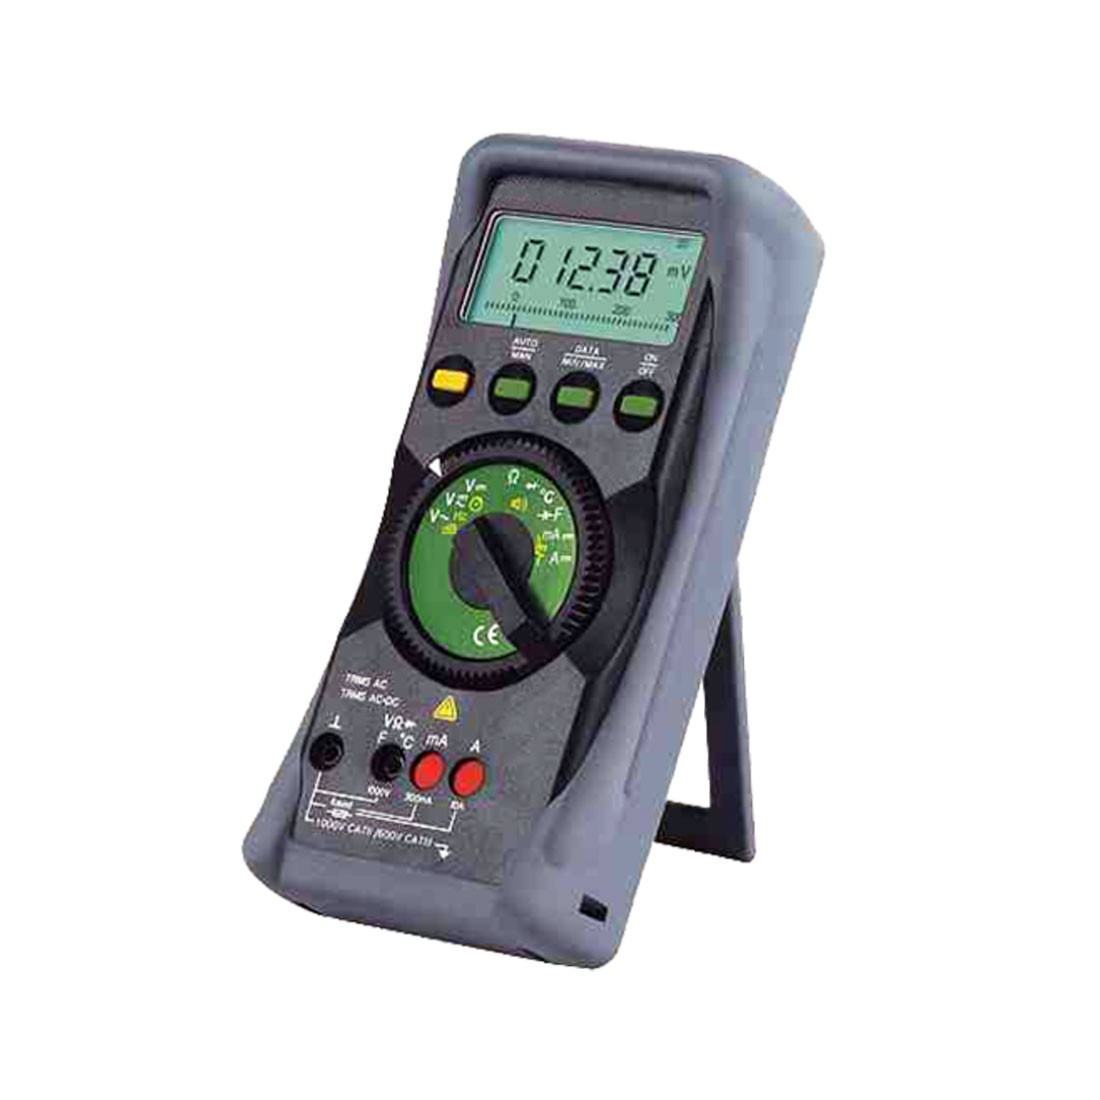 Gamma 10 Multimeter with Terminal Blocking for Maximum Safety